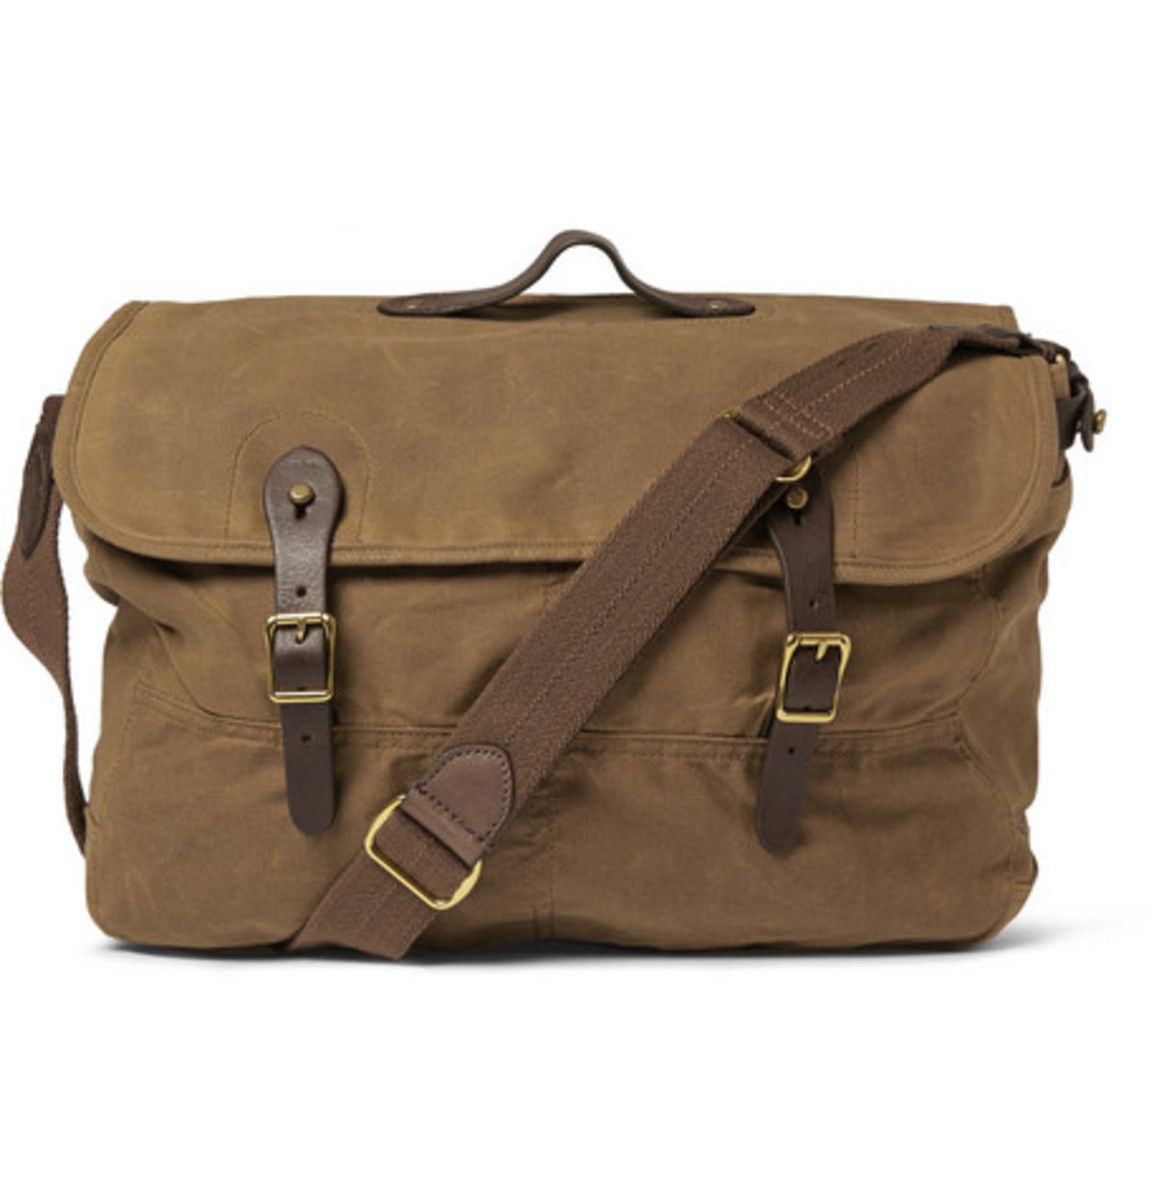 dapper dad gift guide J. Crew messenger bag